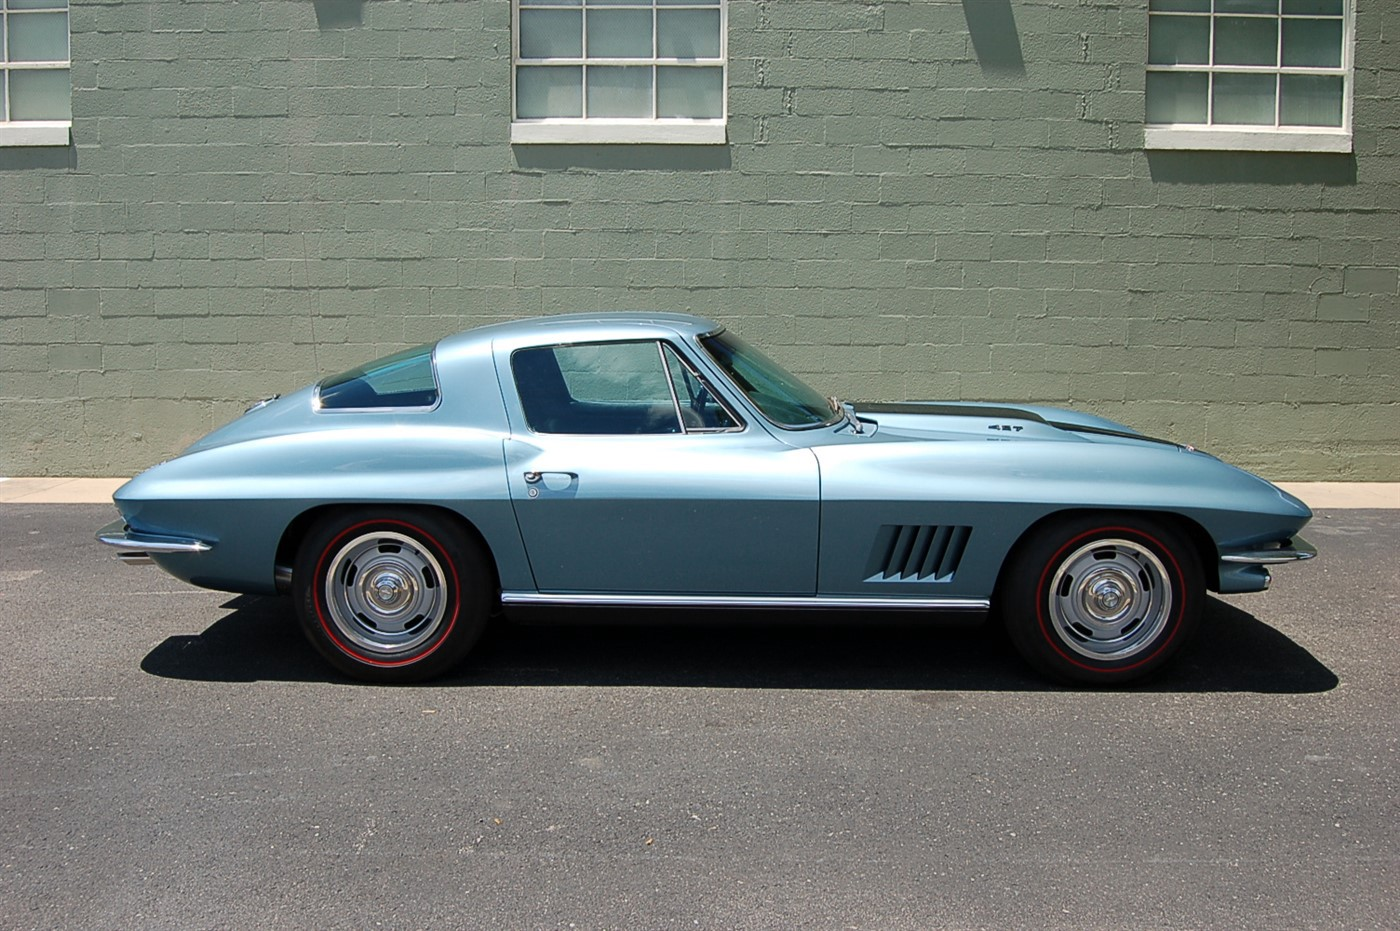 We Just Added A 1967 Chevrolet Corvette 427 435 Hp With All Matching Numbers On New Inventory Check It Out